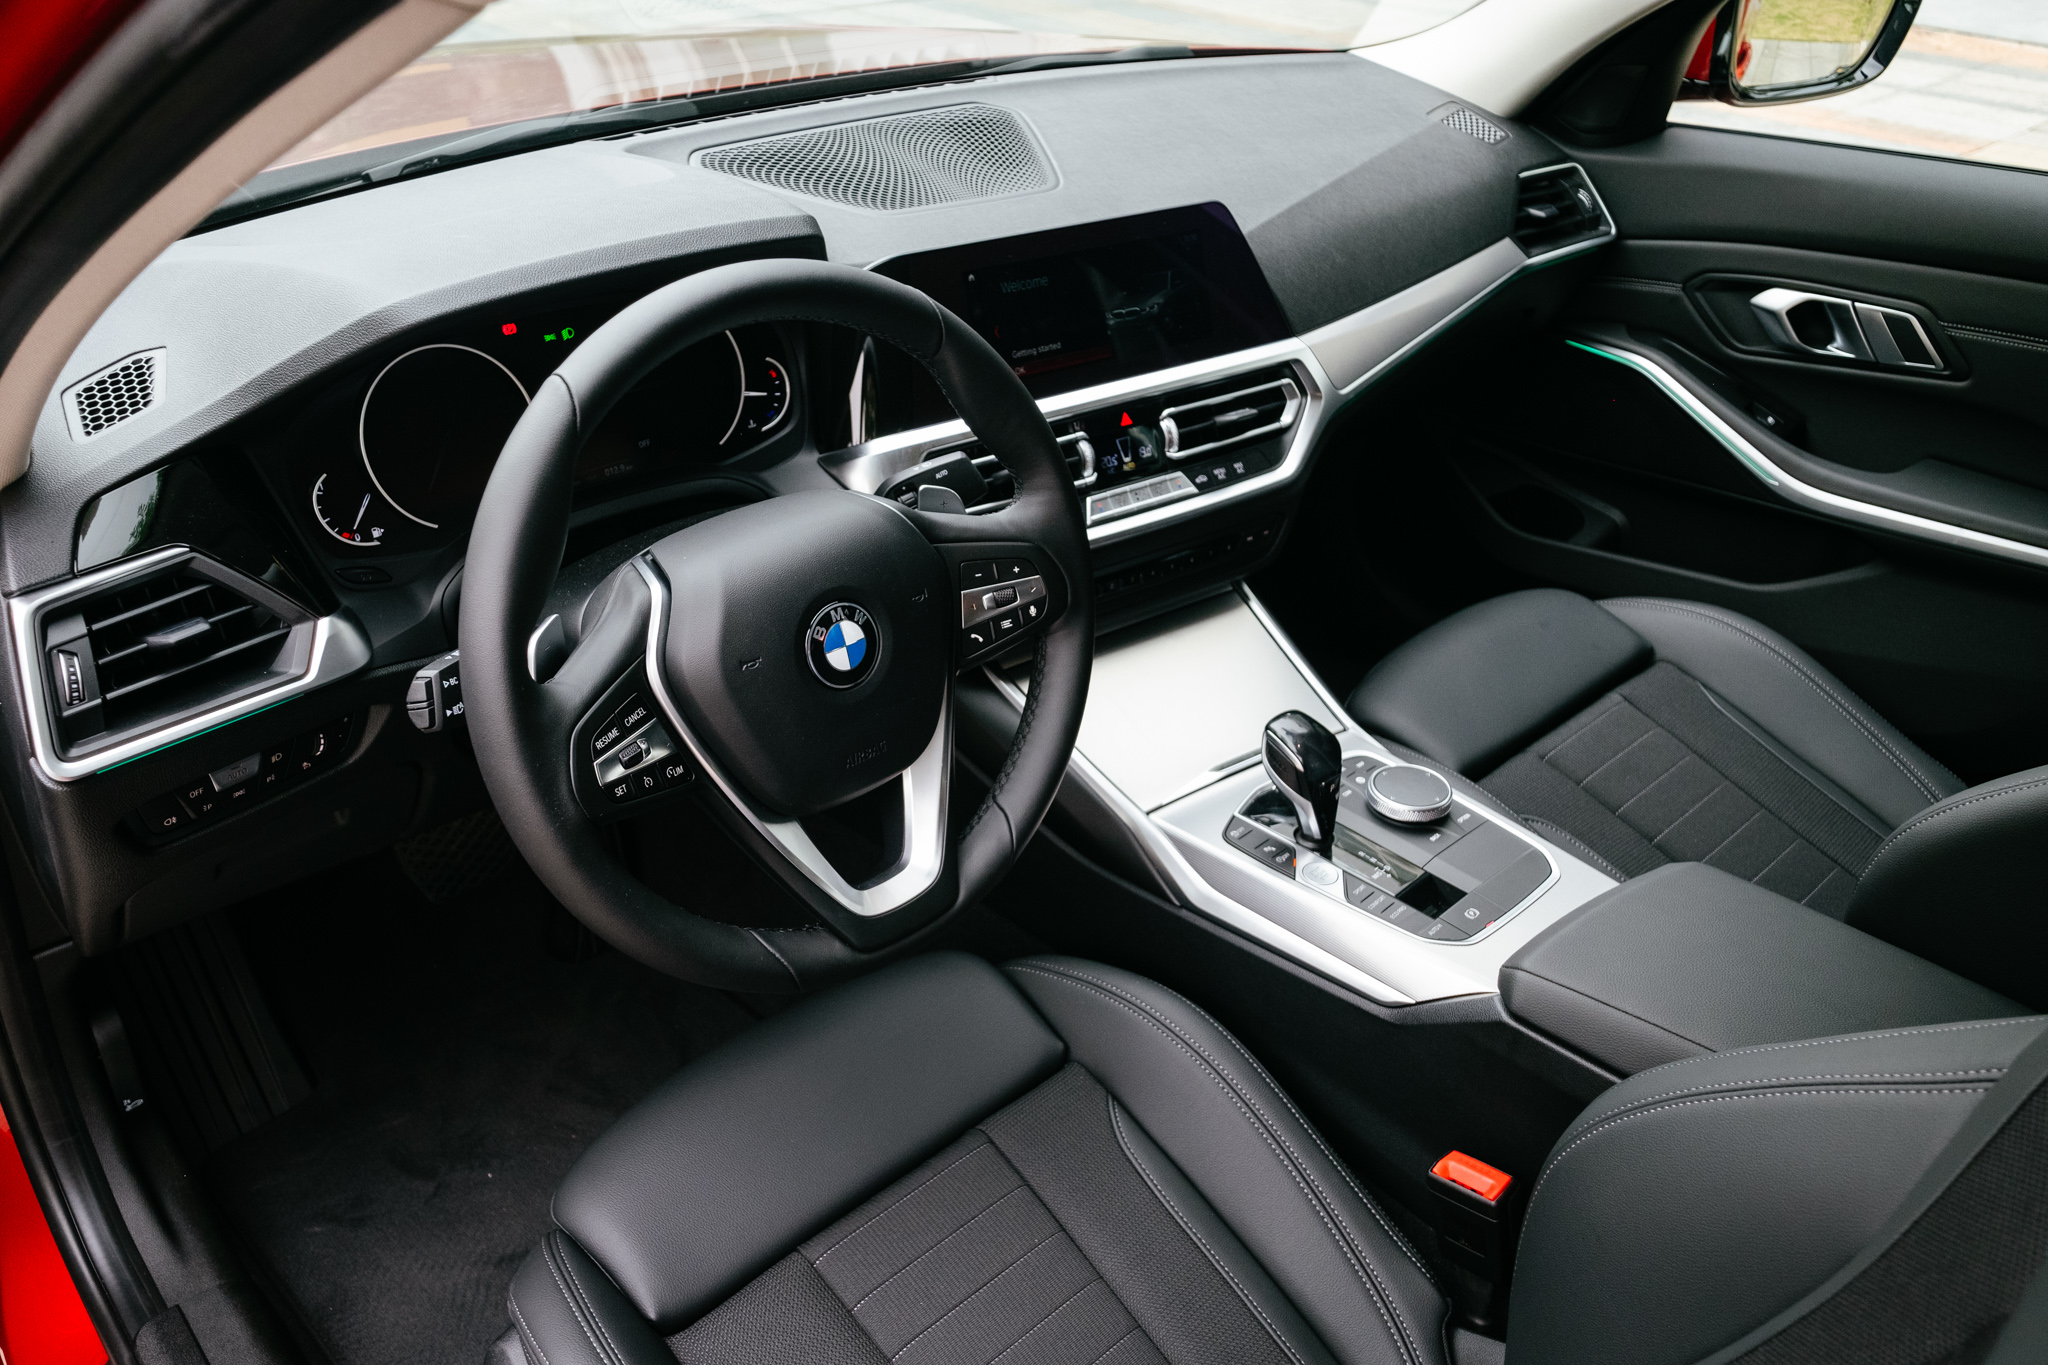 can-canh-bmw-320i-gia-tu-1-899-ty-dong